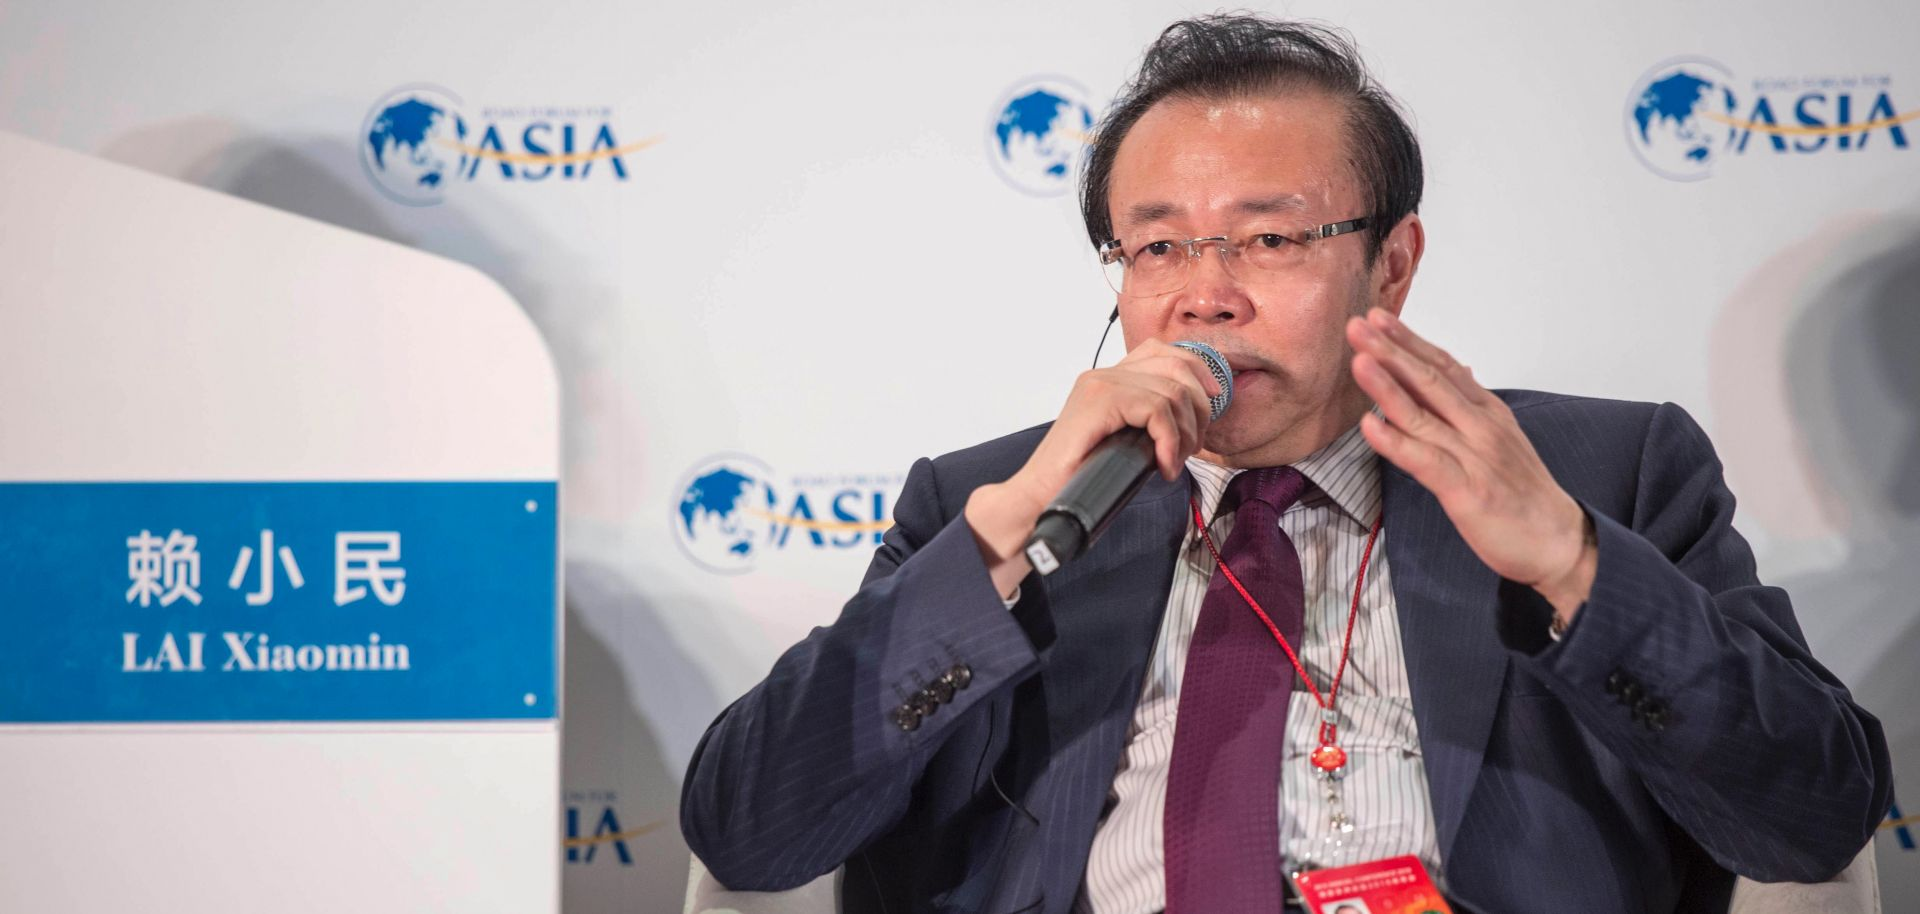 Lai Xiaomin, then-chairman of Huarong Asset Management Co., speaks during a conference in China in 2016. Lai was executed in January 2021 following his conviction on bribery charges.